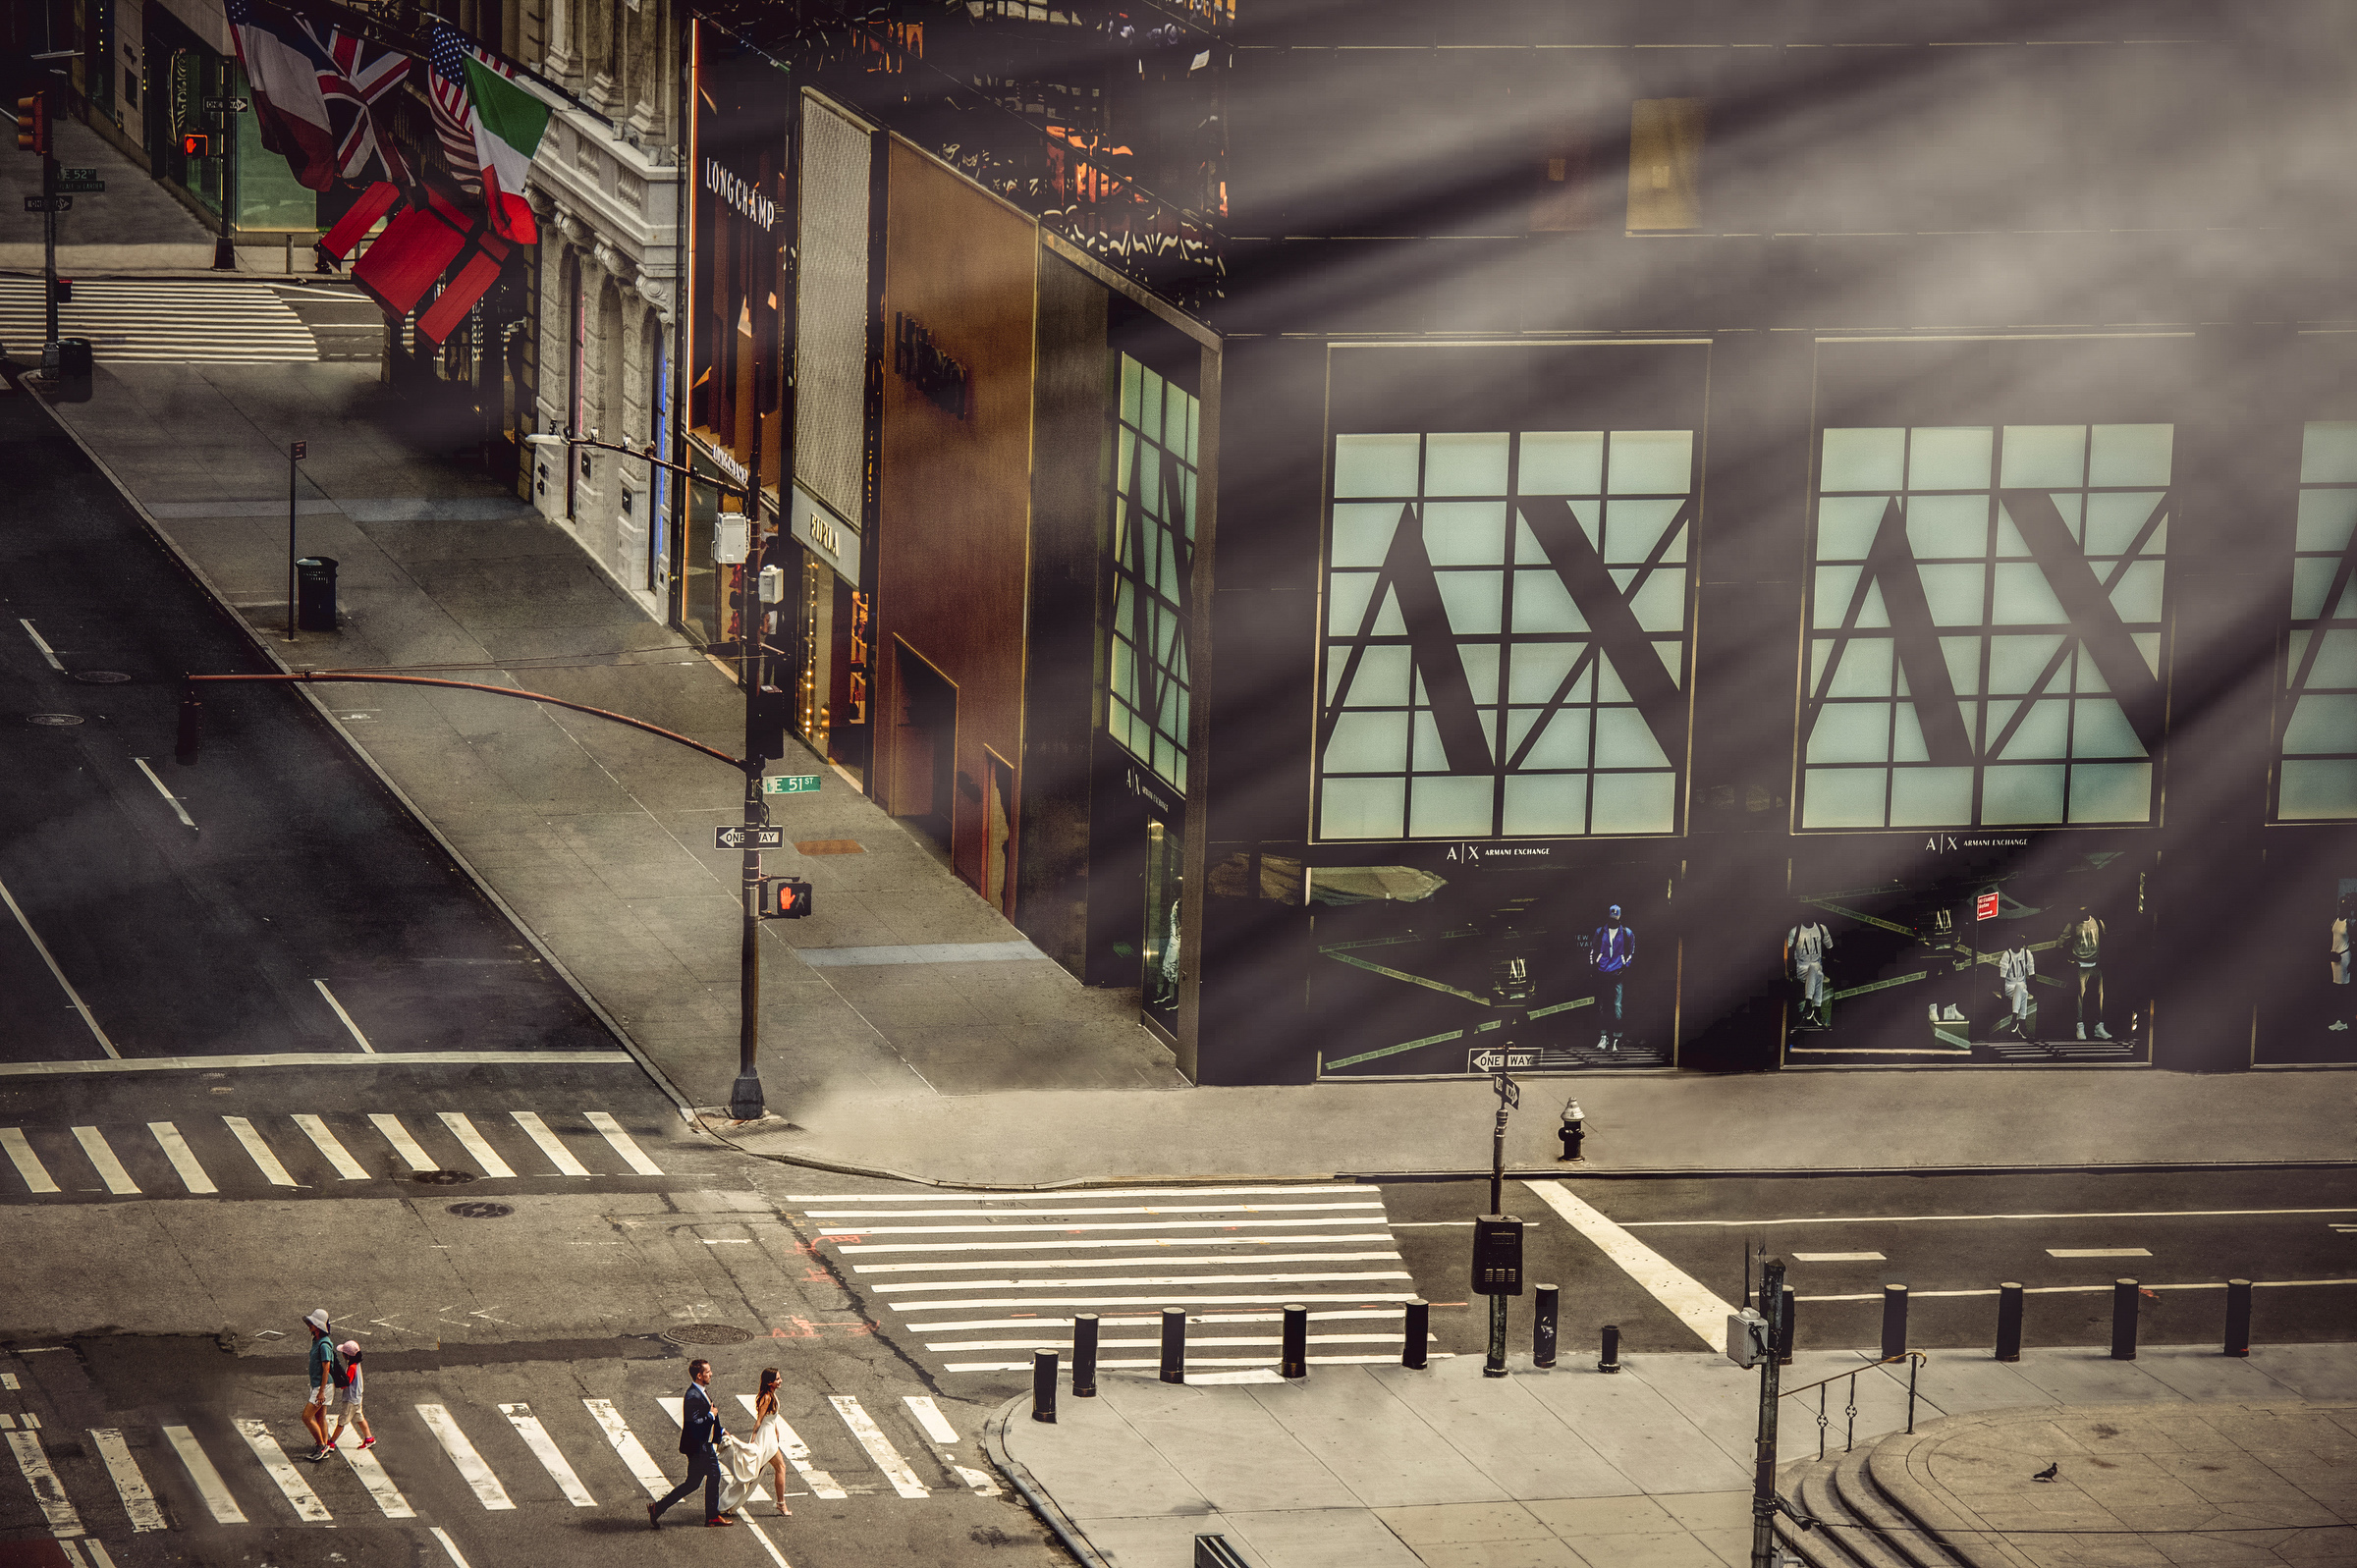 aerial-view-of-couple-at-armani-store-in-new-york-matthew-sowa-photography